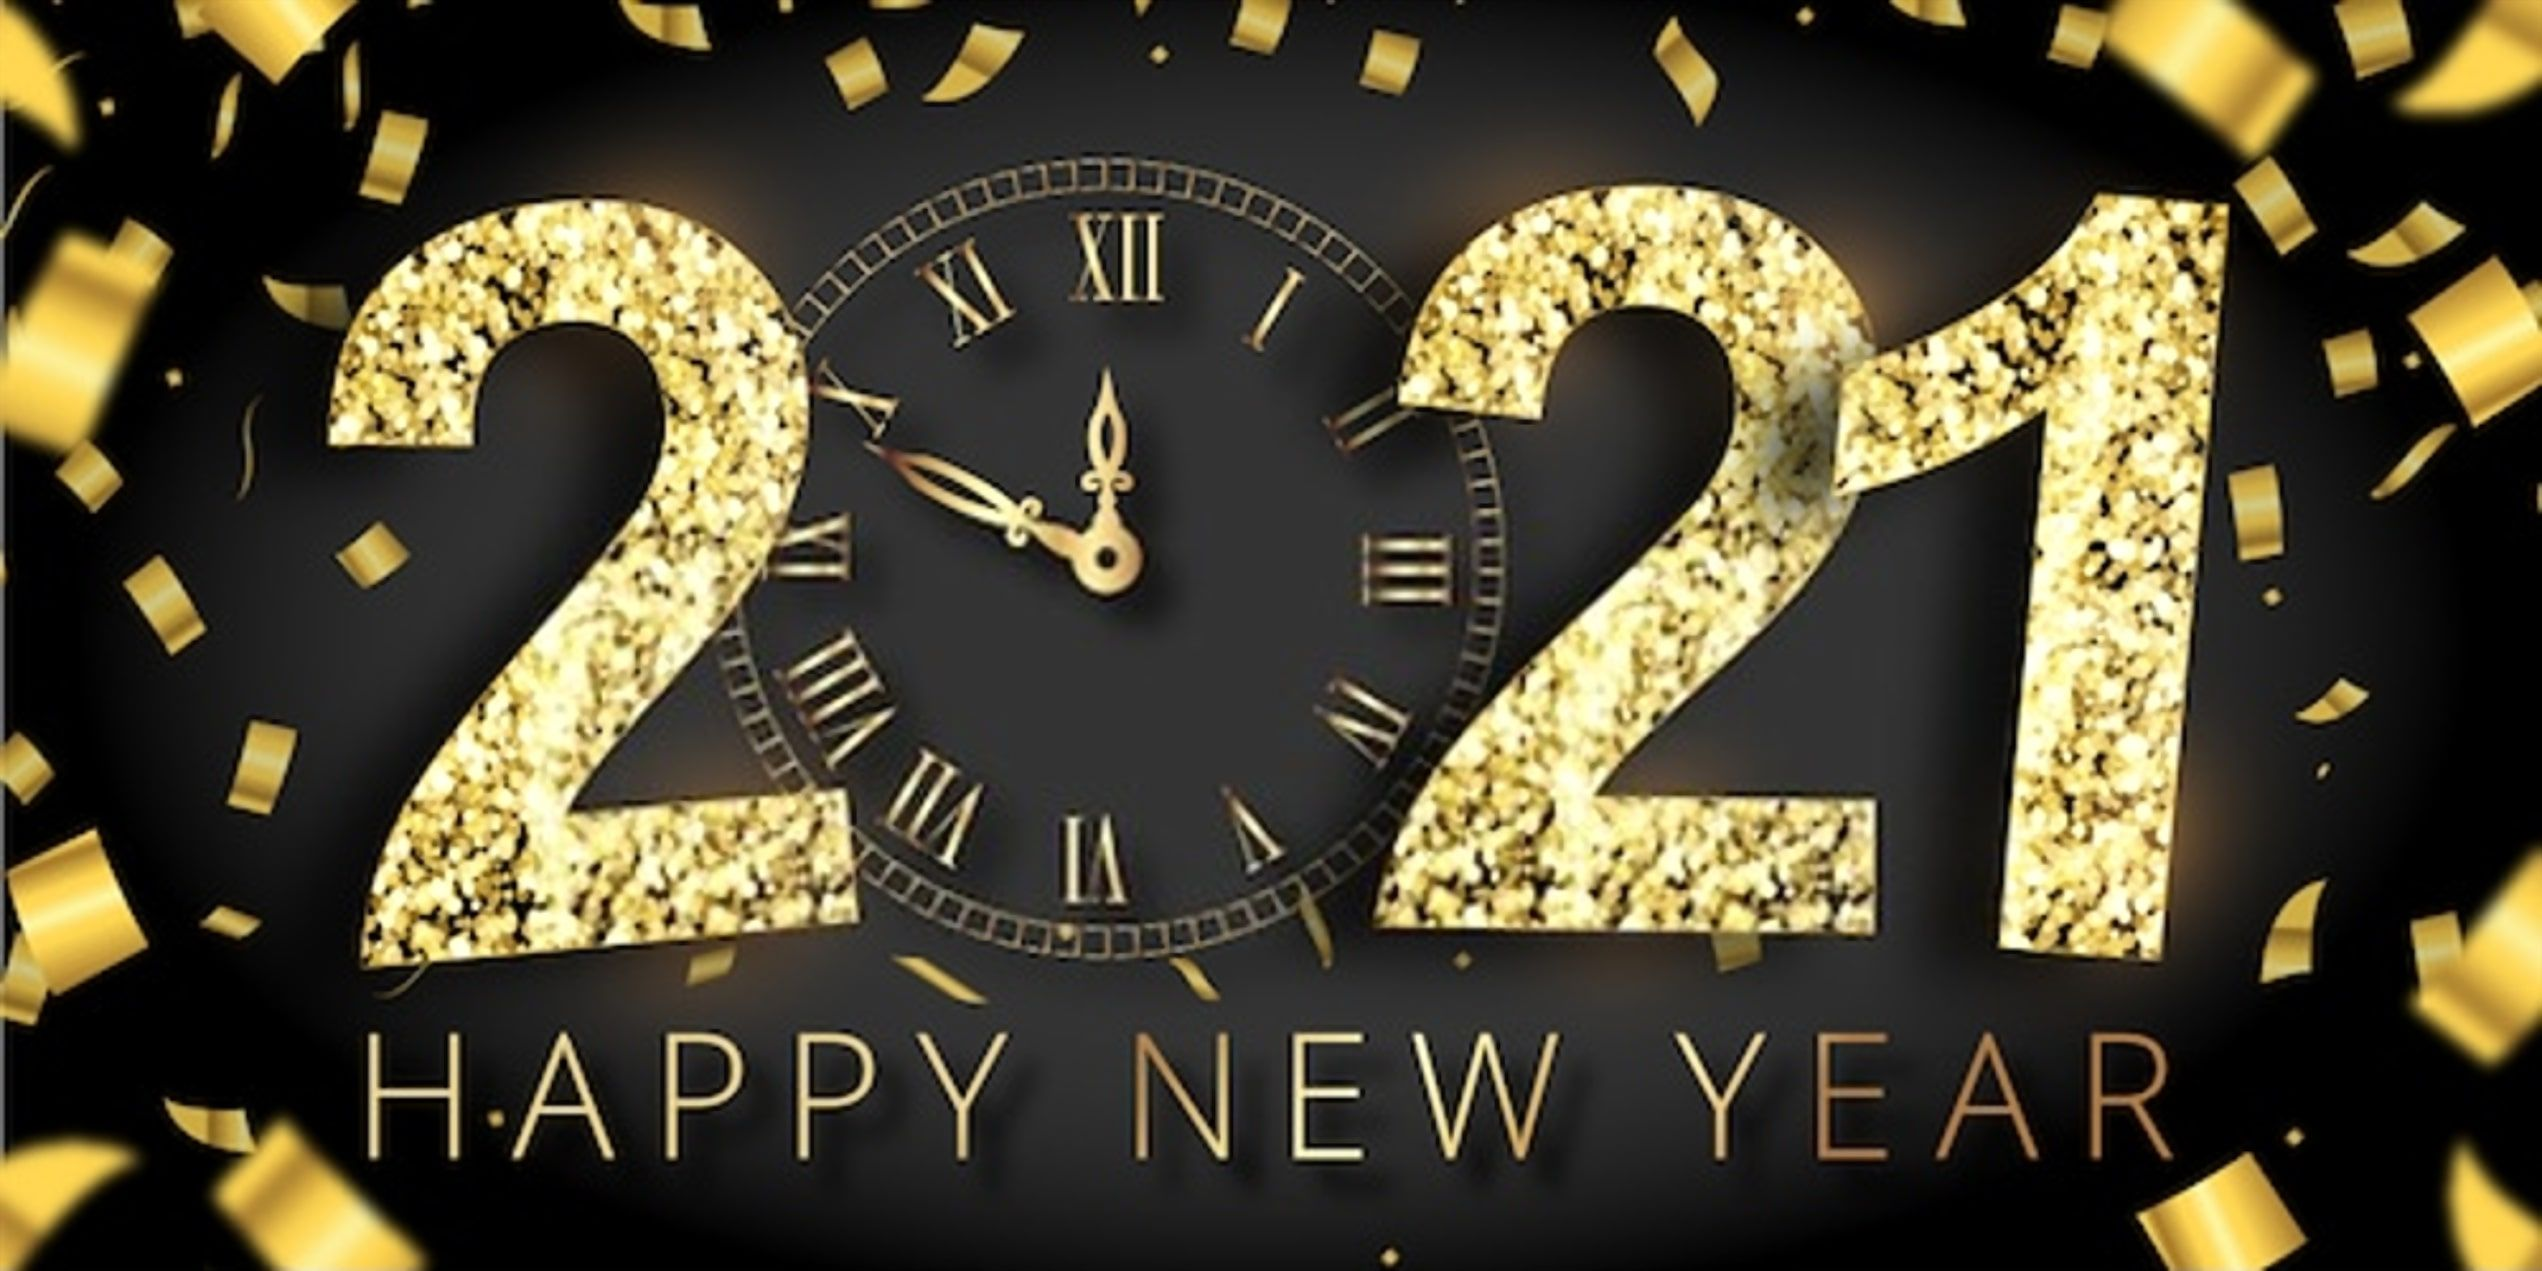 Happy New Year 2021 Images Wallpapers Happy New Year Images Happy New Year Pictures Happy New Year Wallpaper